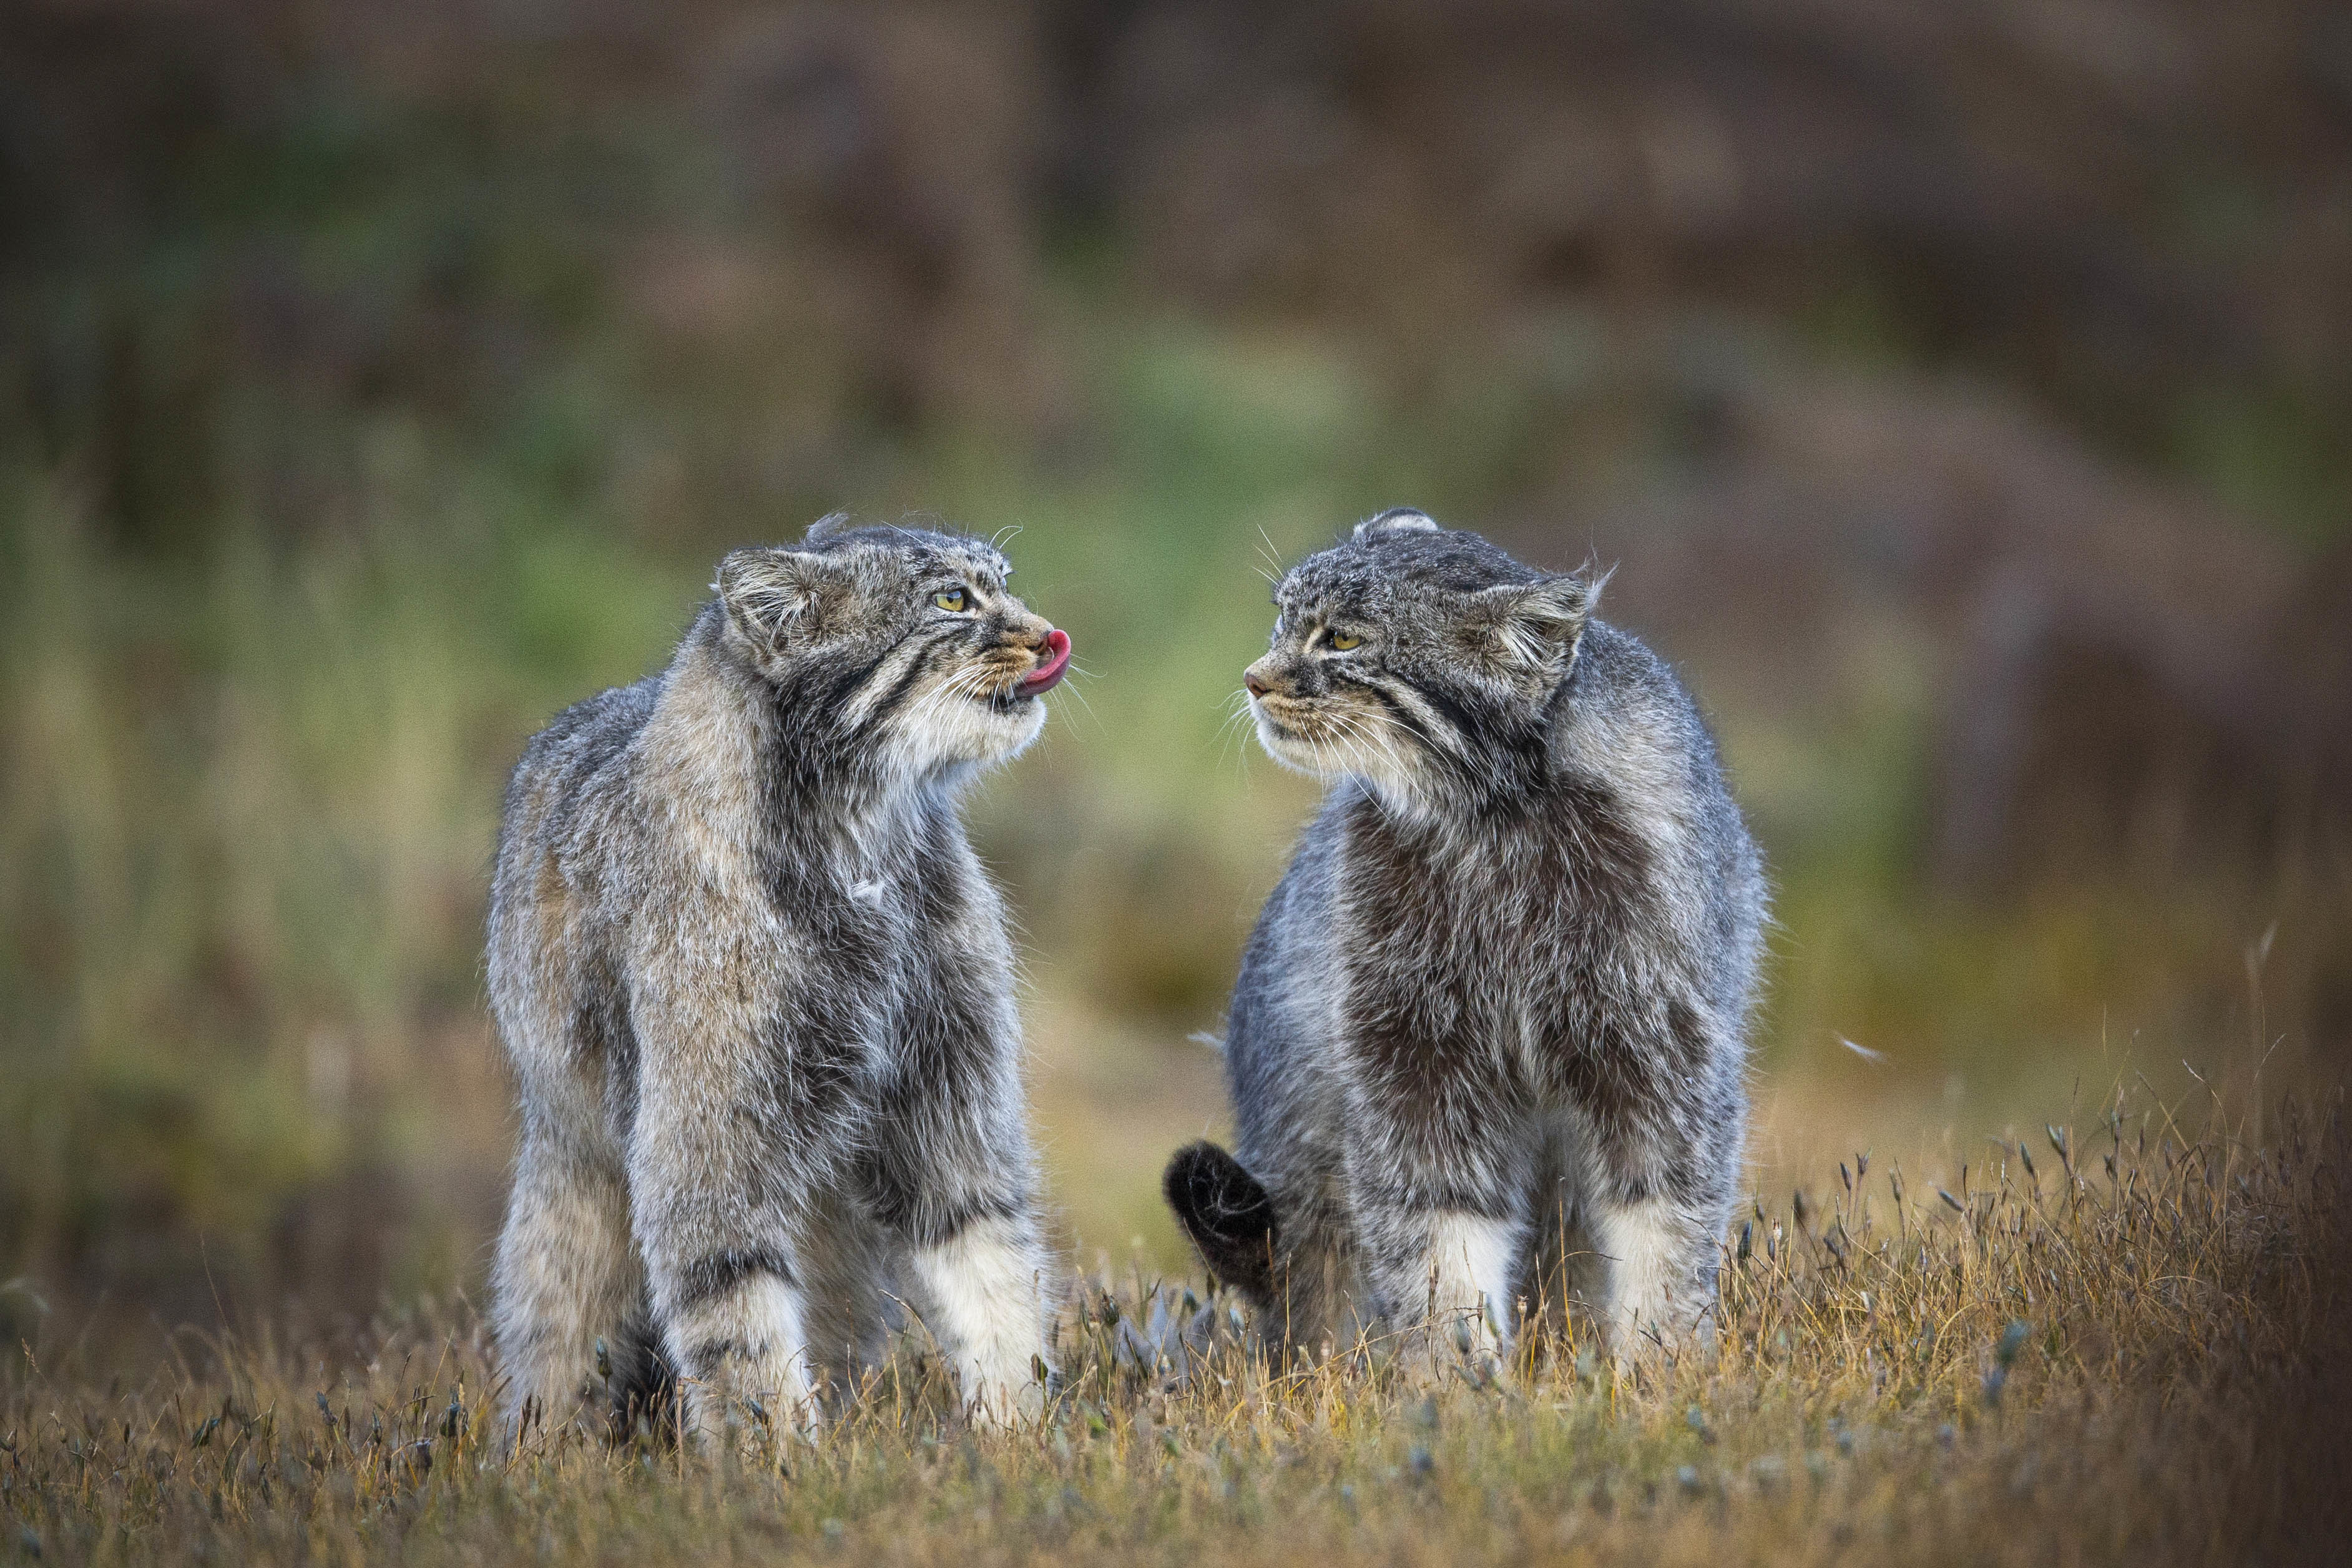 The Steppe cat shares a habitat with the tibetan fox